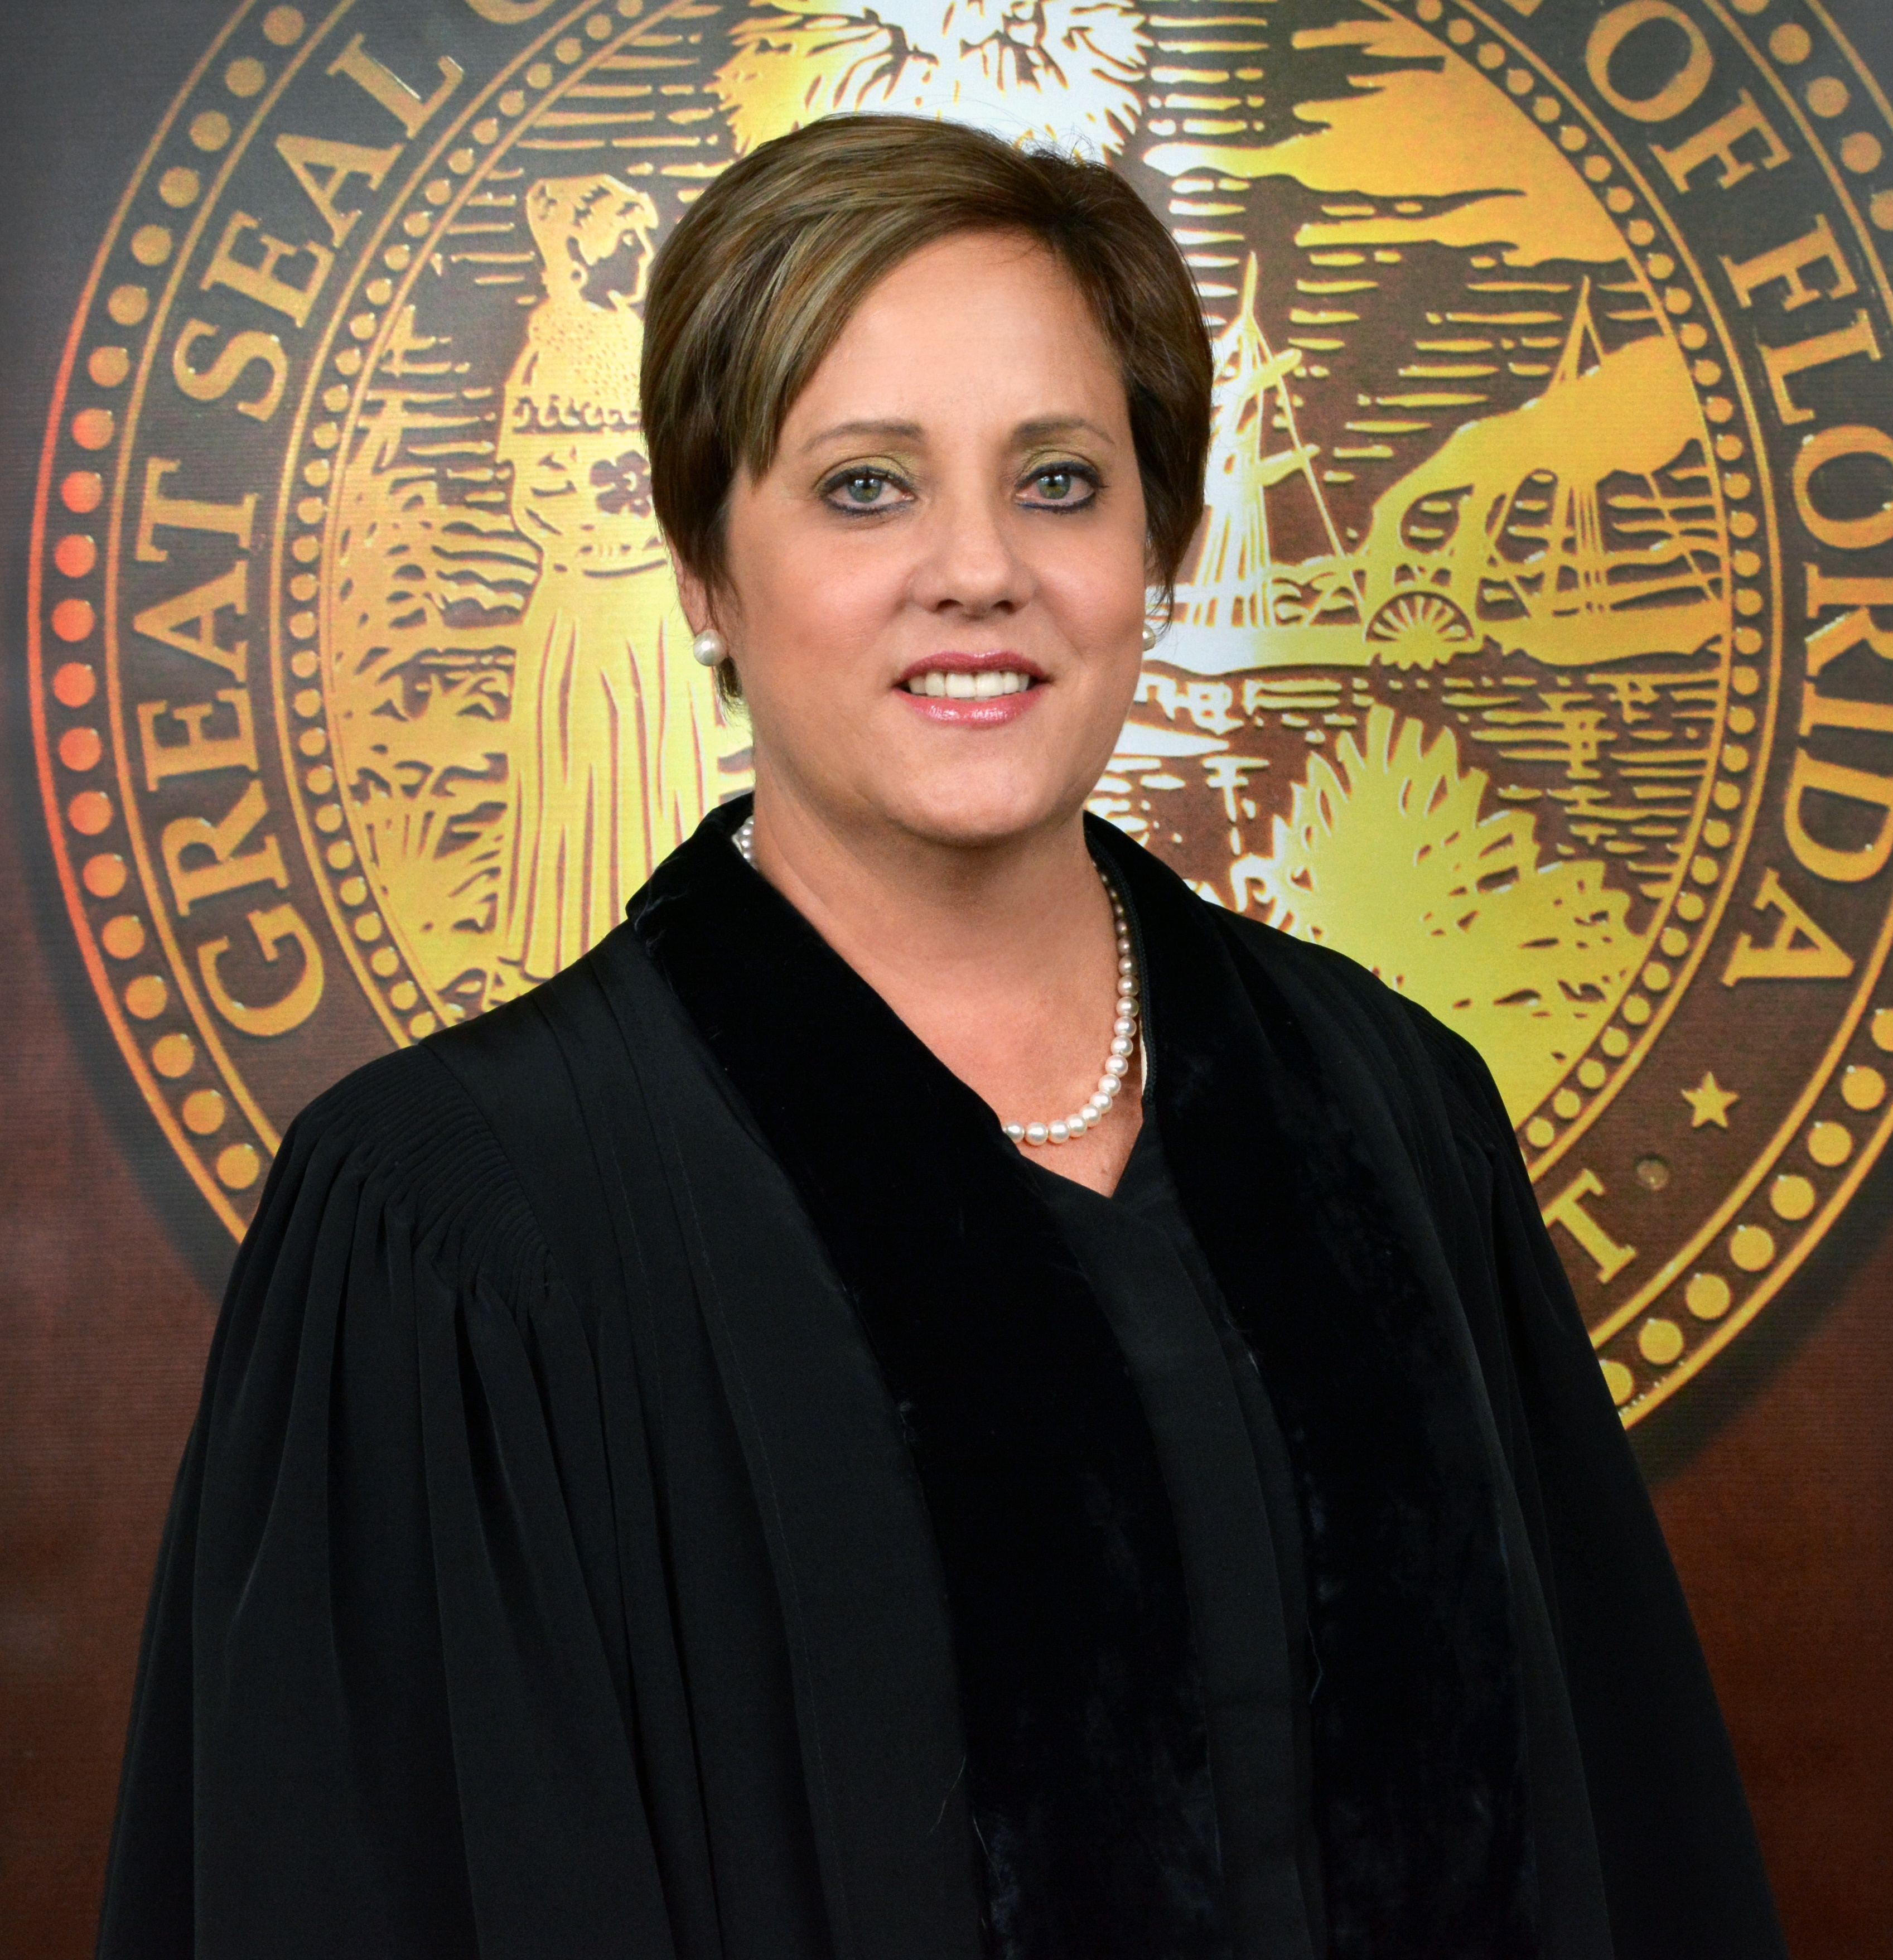 Judge Maria Sampedro-Iglesia, associate administrative judge of the Eleventh Judicial Circuit Juvenile Division, presides over the recently launched human trafficking court, called GRACE Court (Growth Renewed through Acceptance, Change and Empowerment Court).